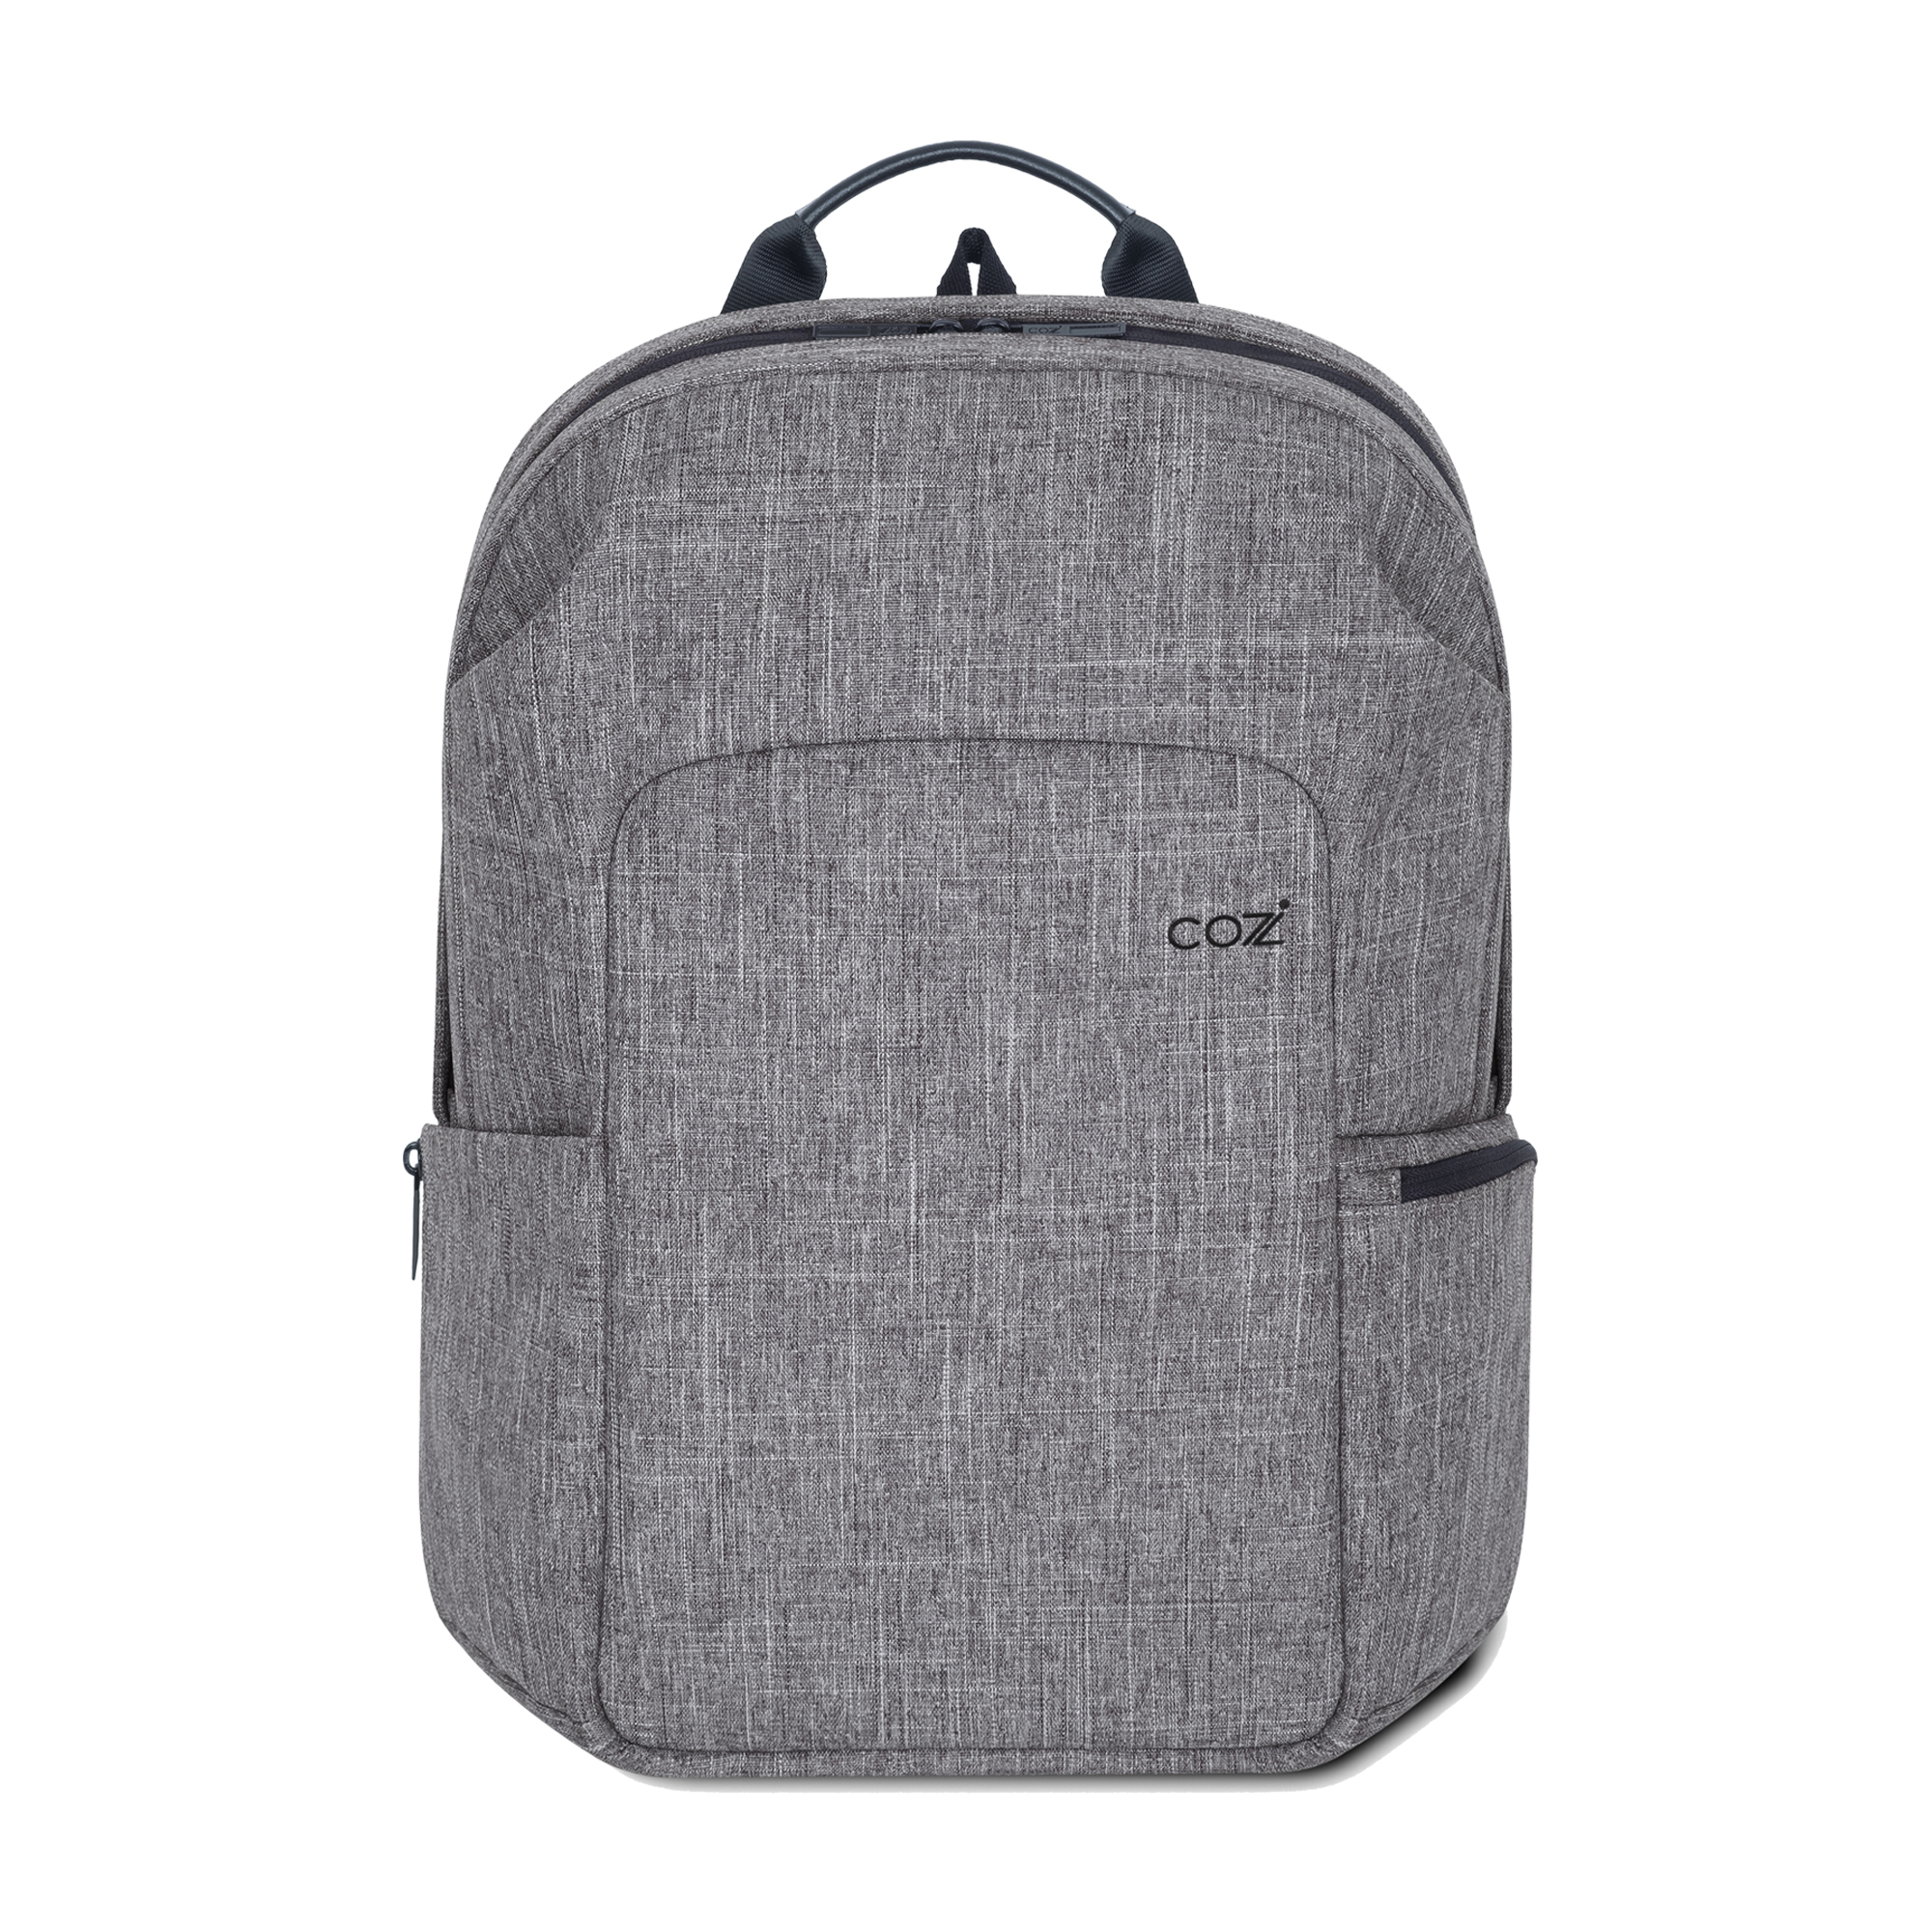 COZISTYLE - METRO SLIM BACKPACK POLY COLLECTION 15